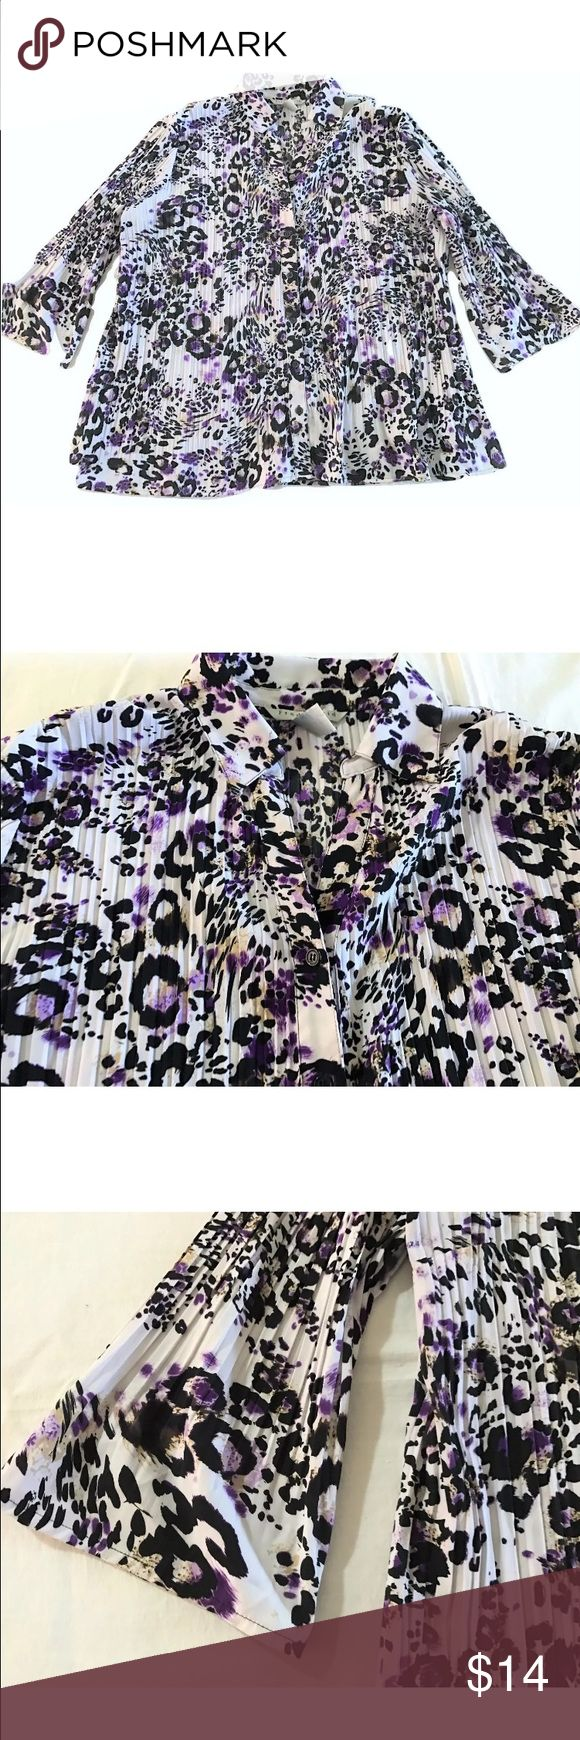 Fred David Plus Size Accordion Crinkle Blouse Fred David Woman Plus Size Accordion Crinkle Blouse SIZE 22/24  In very gently used, overall very good, very clean condition.  Accrodion crinkle stretch fabric, in a fun purple black animal print on a white background Button front, with a V opening left at the top, with no bouttons Collard 3/4 lightly belled sleeves Size: 22/24 Bust: 54 inches around unstretched Length: 27 inches  97% Polyester, 3% Spandex Thank you so much! Fred David Tops…